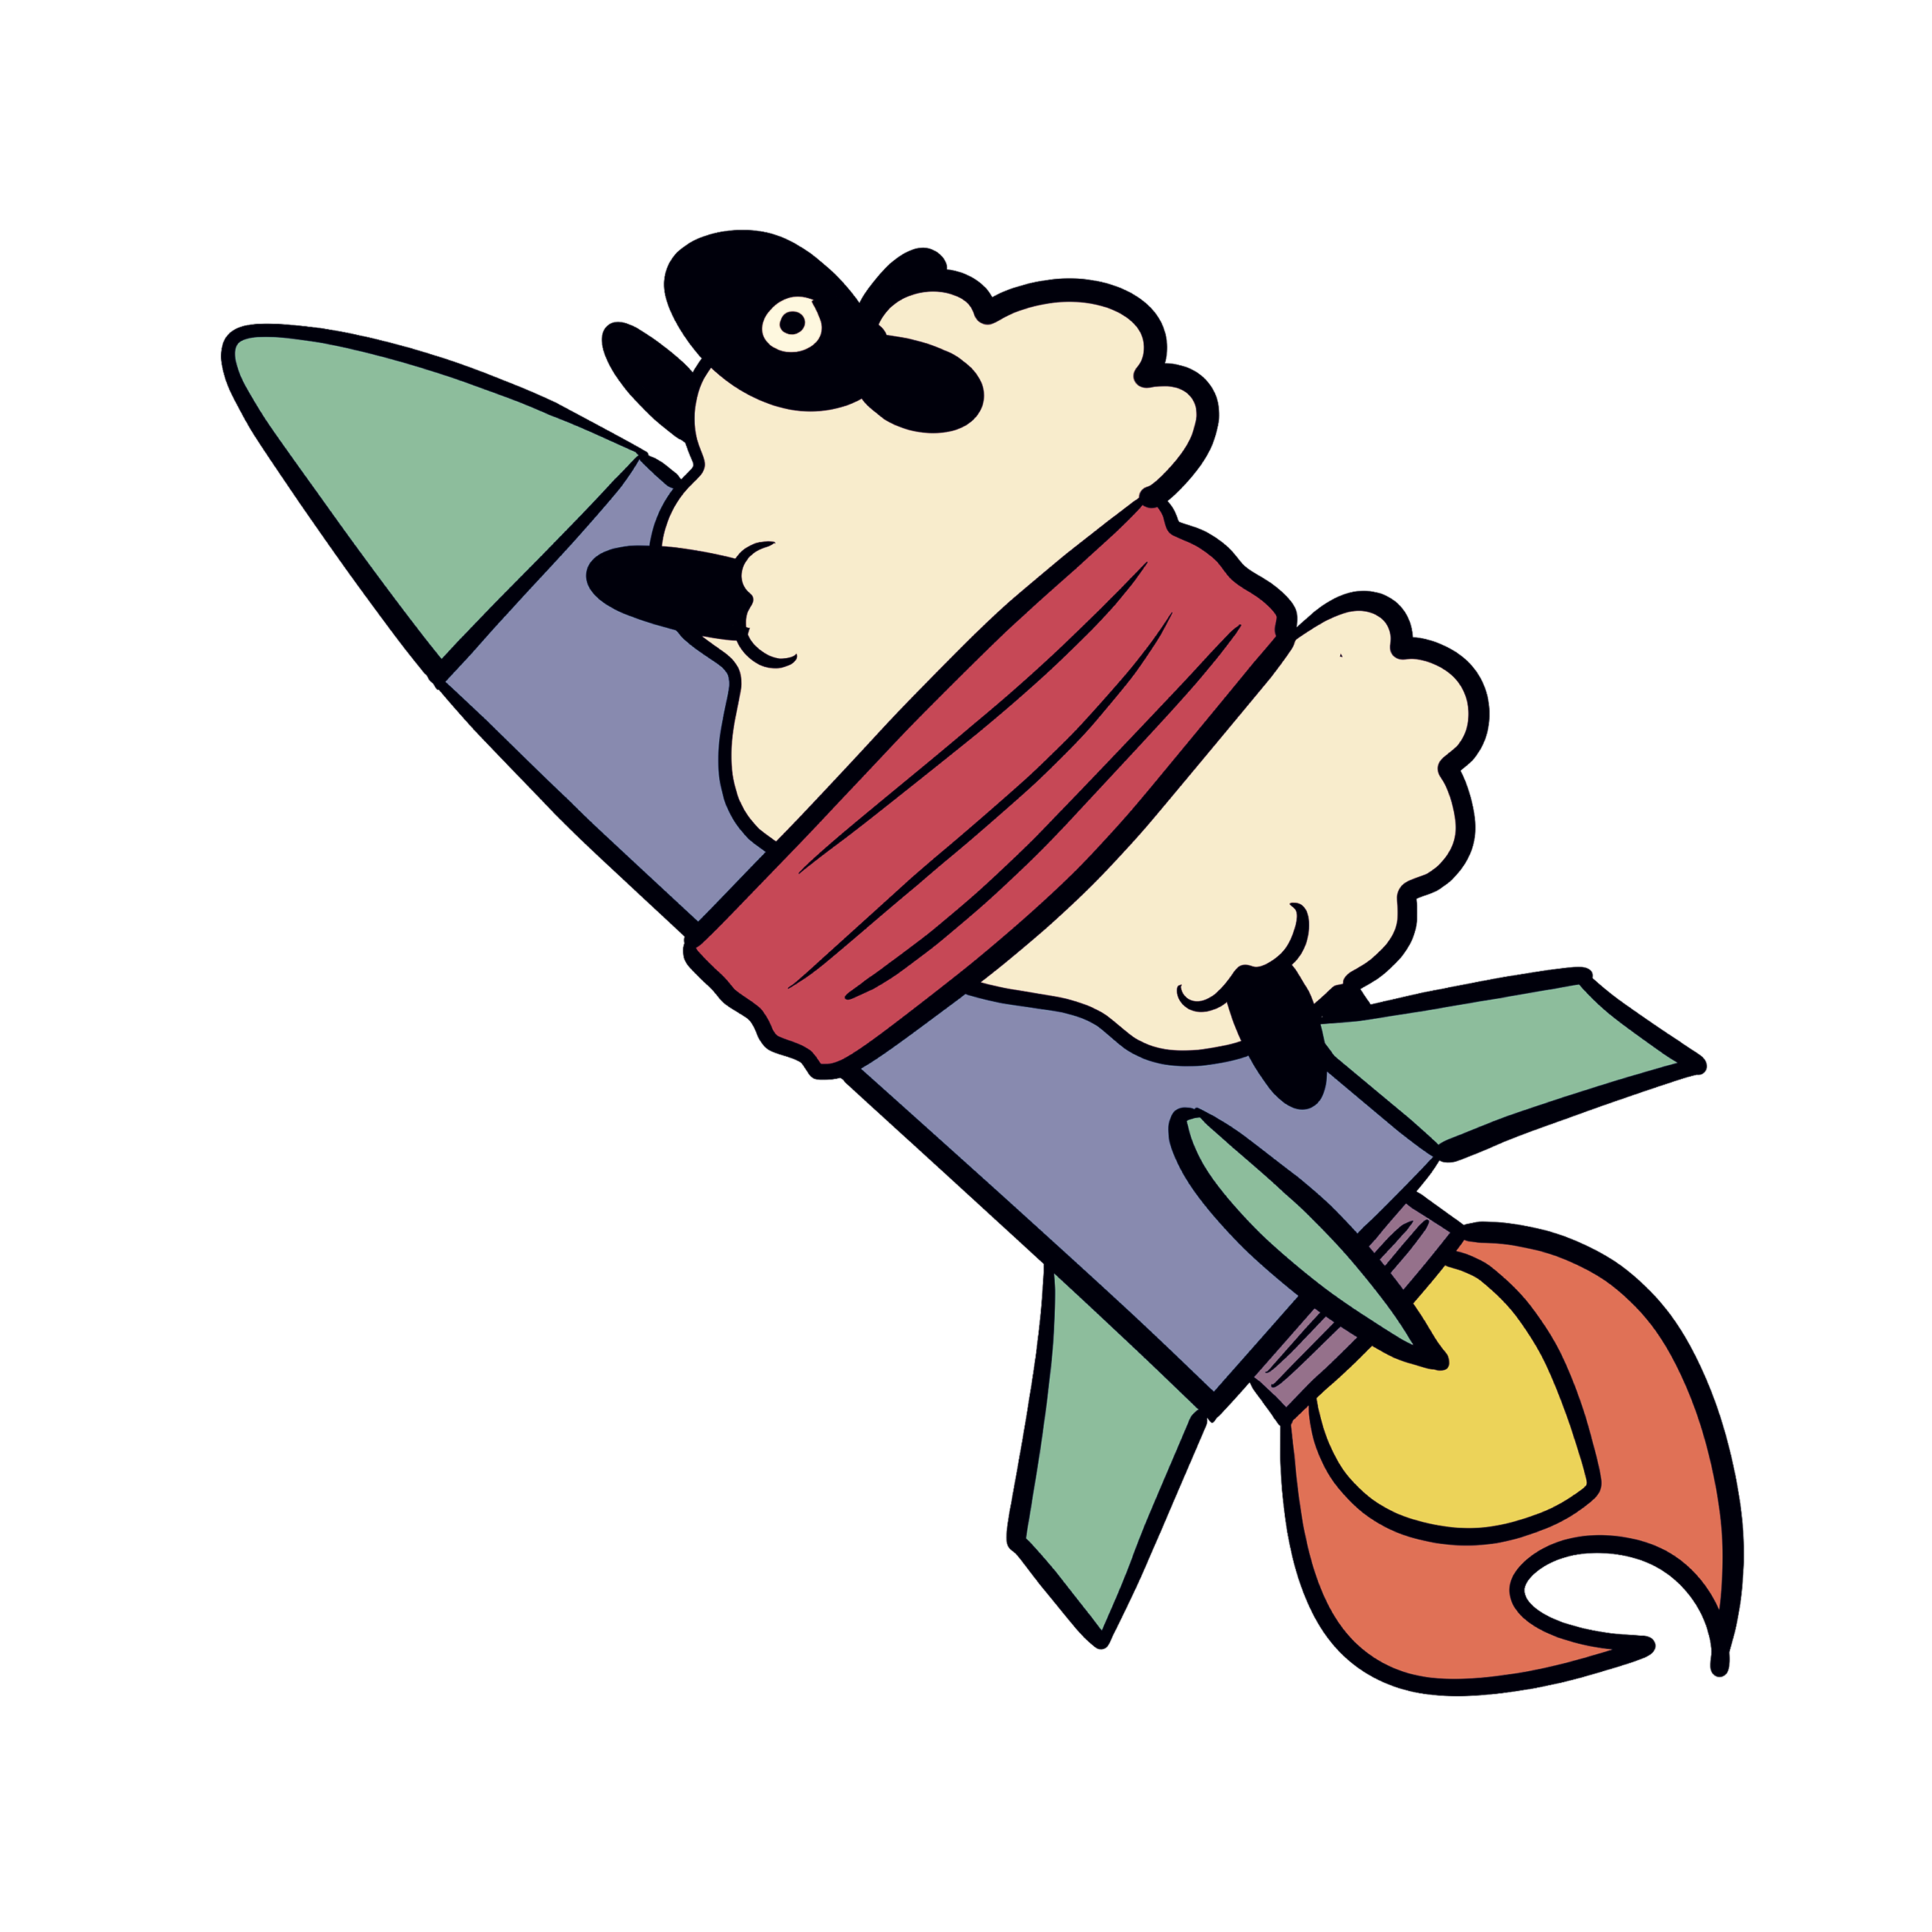 GO GO MACH ROCKET SHEEP!